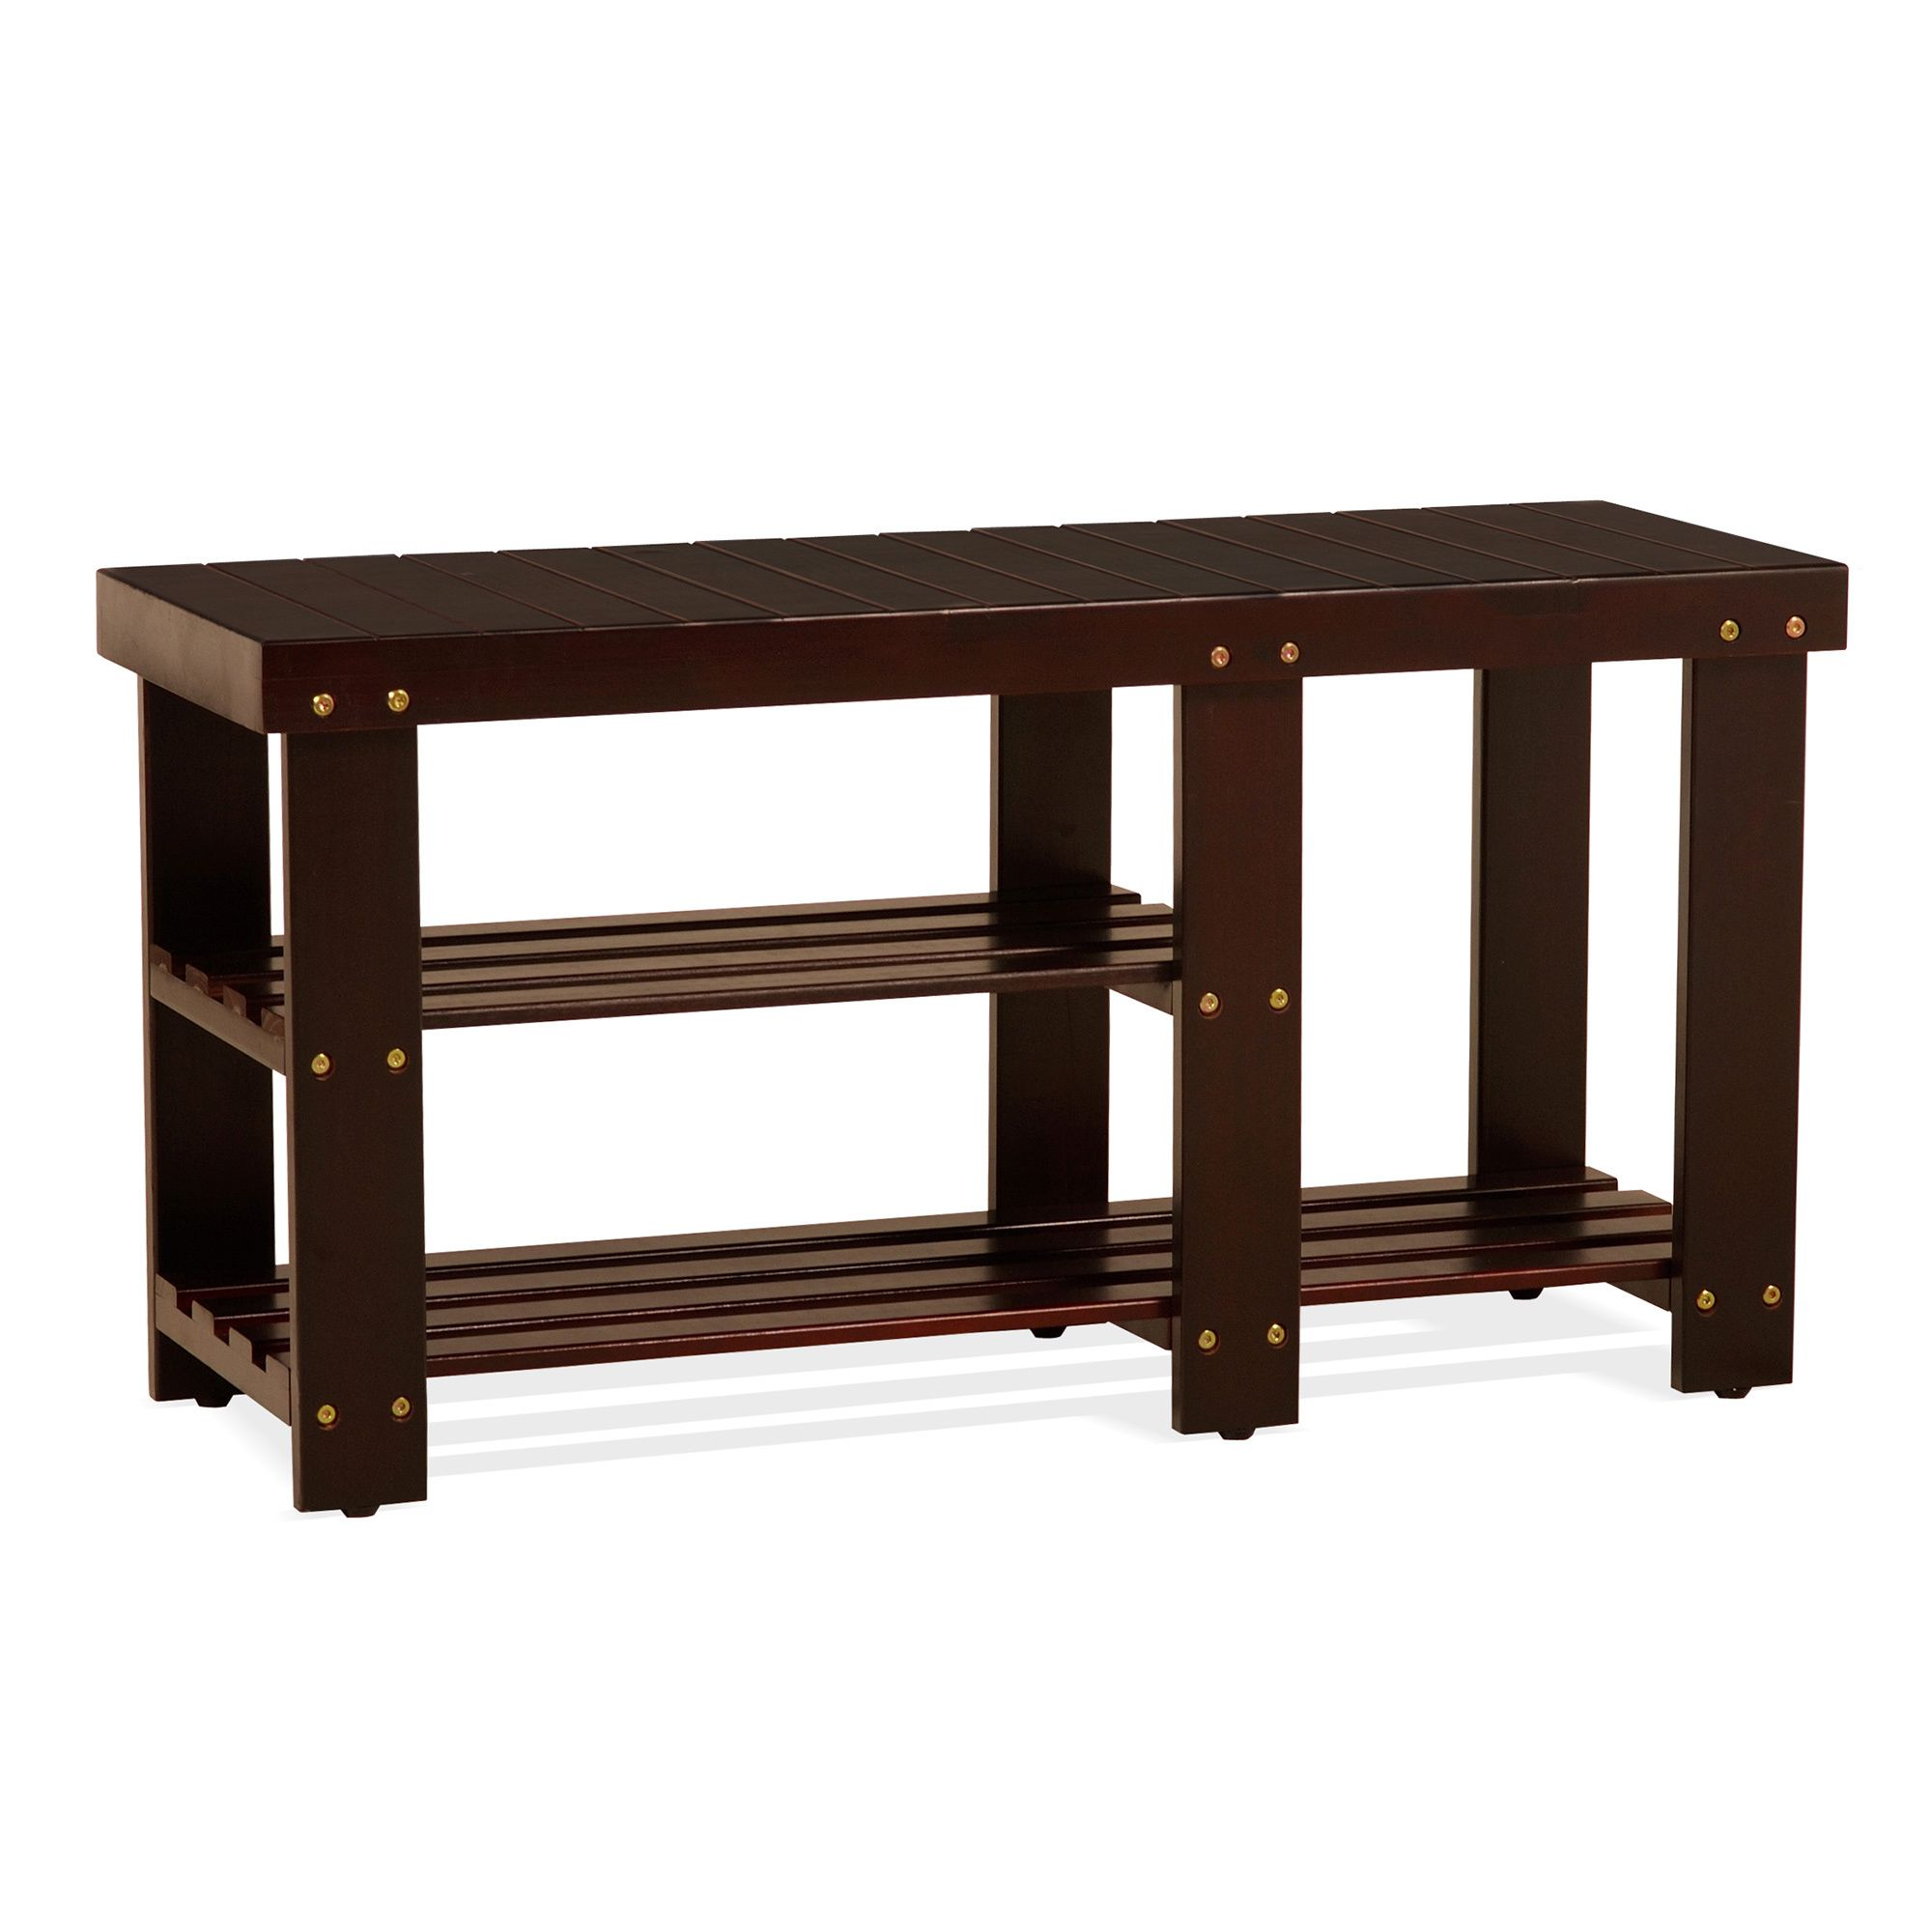 Elegant entryway furniture Cabinet This Elegant Entryway Bench With Storage For Shoes And Boots Is Crafted Of Quality Solid Woods It Is Available In Espresso And Oak Finish Usebandcom This Elegant Entryway Bench With Storage For Shoes And Boots Is